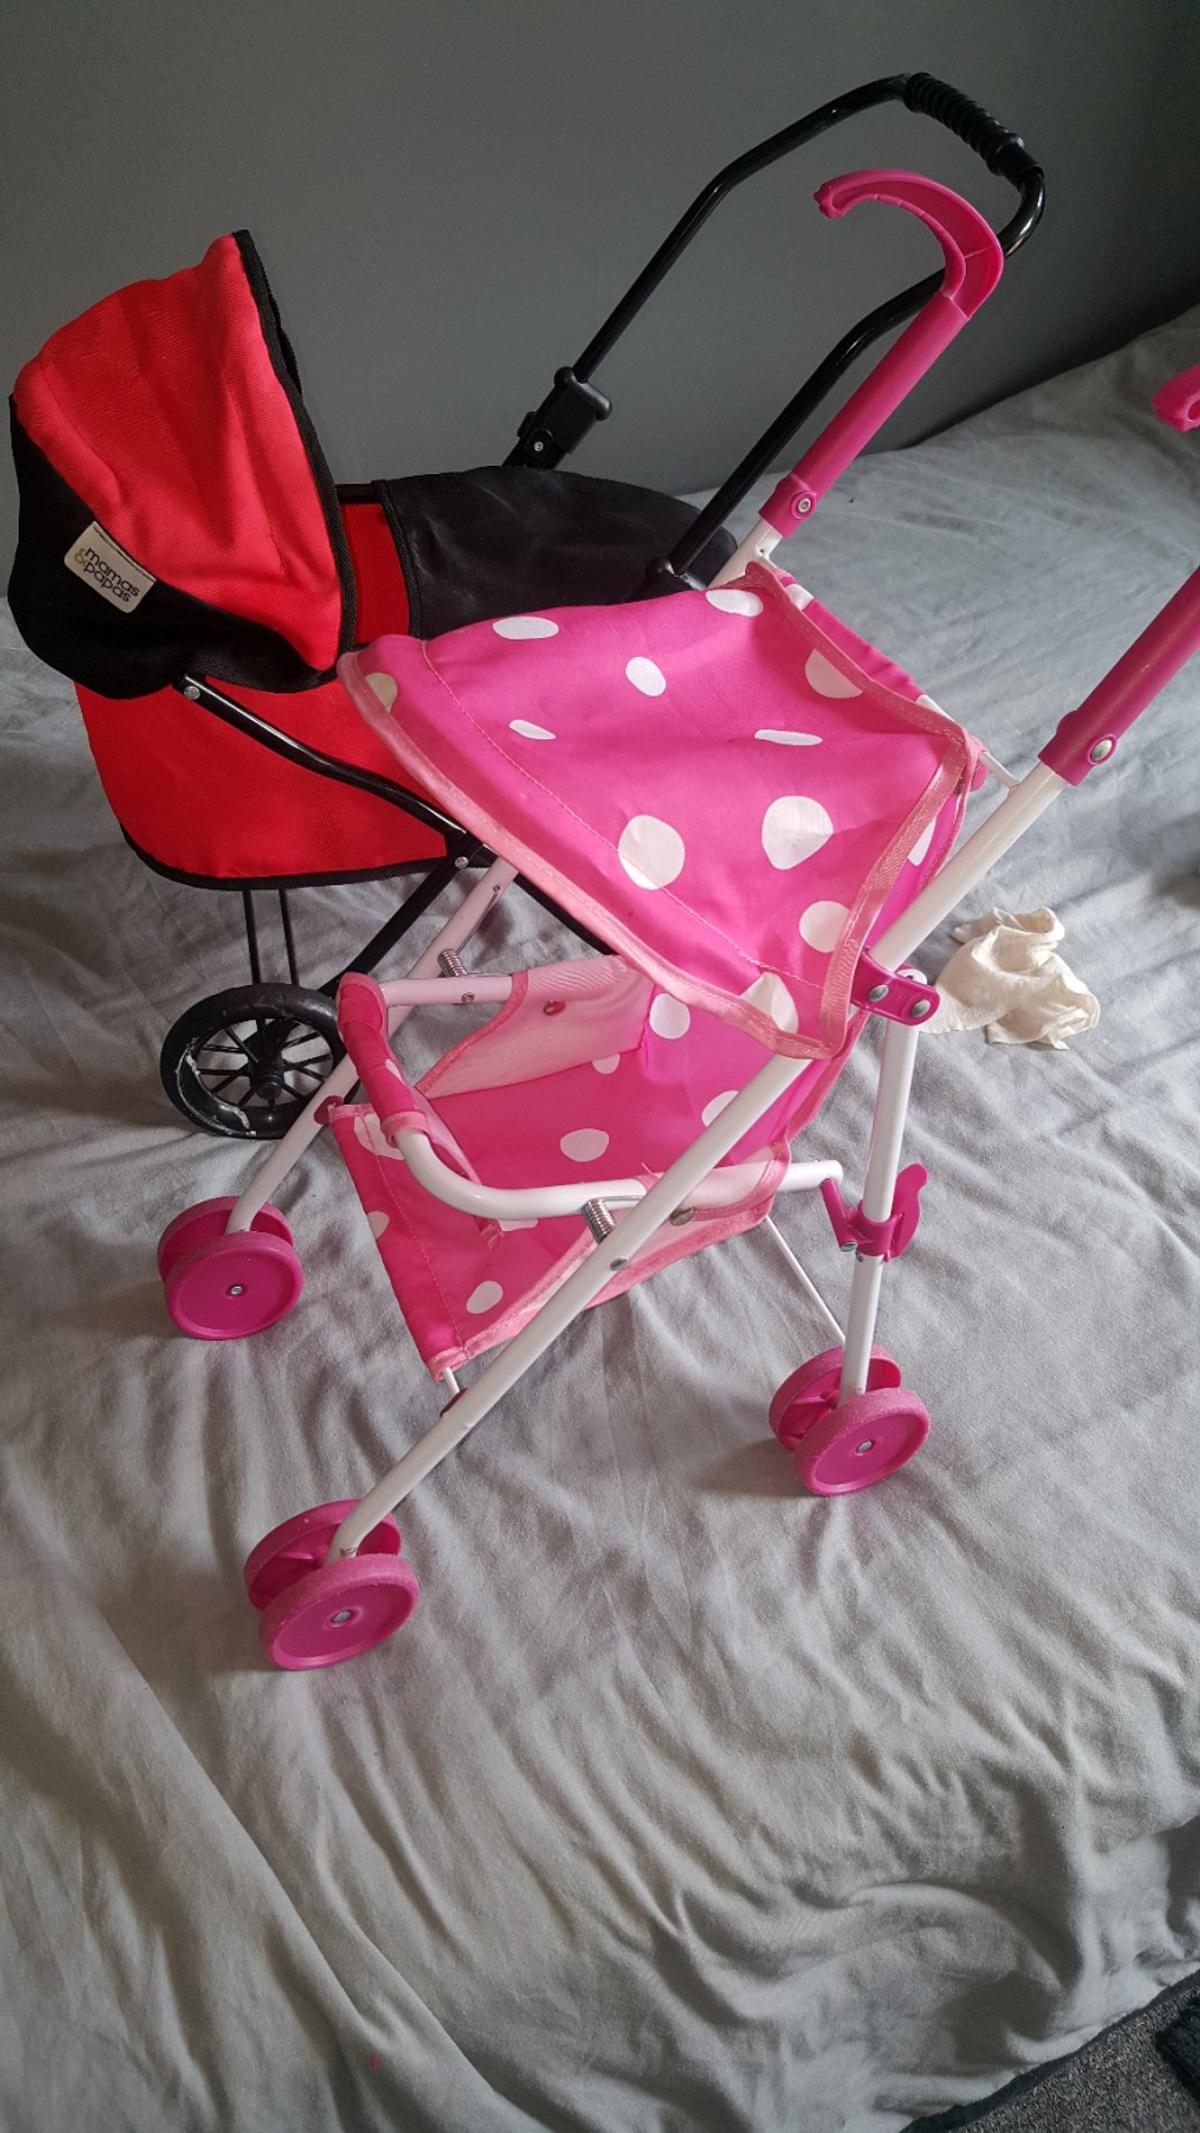 pink my 1st buggy and my 1st m&p pram hardly used £10 both